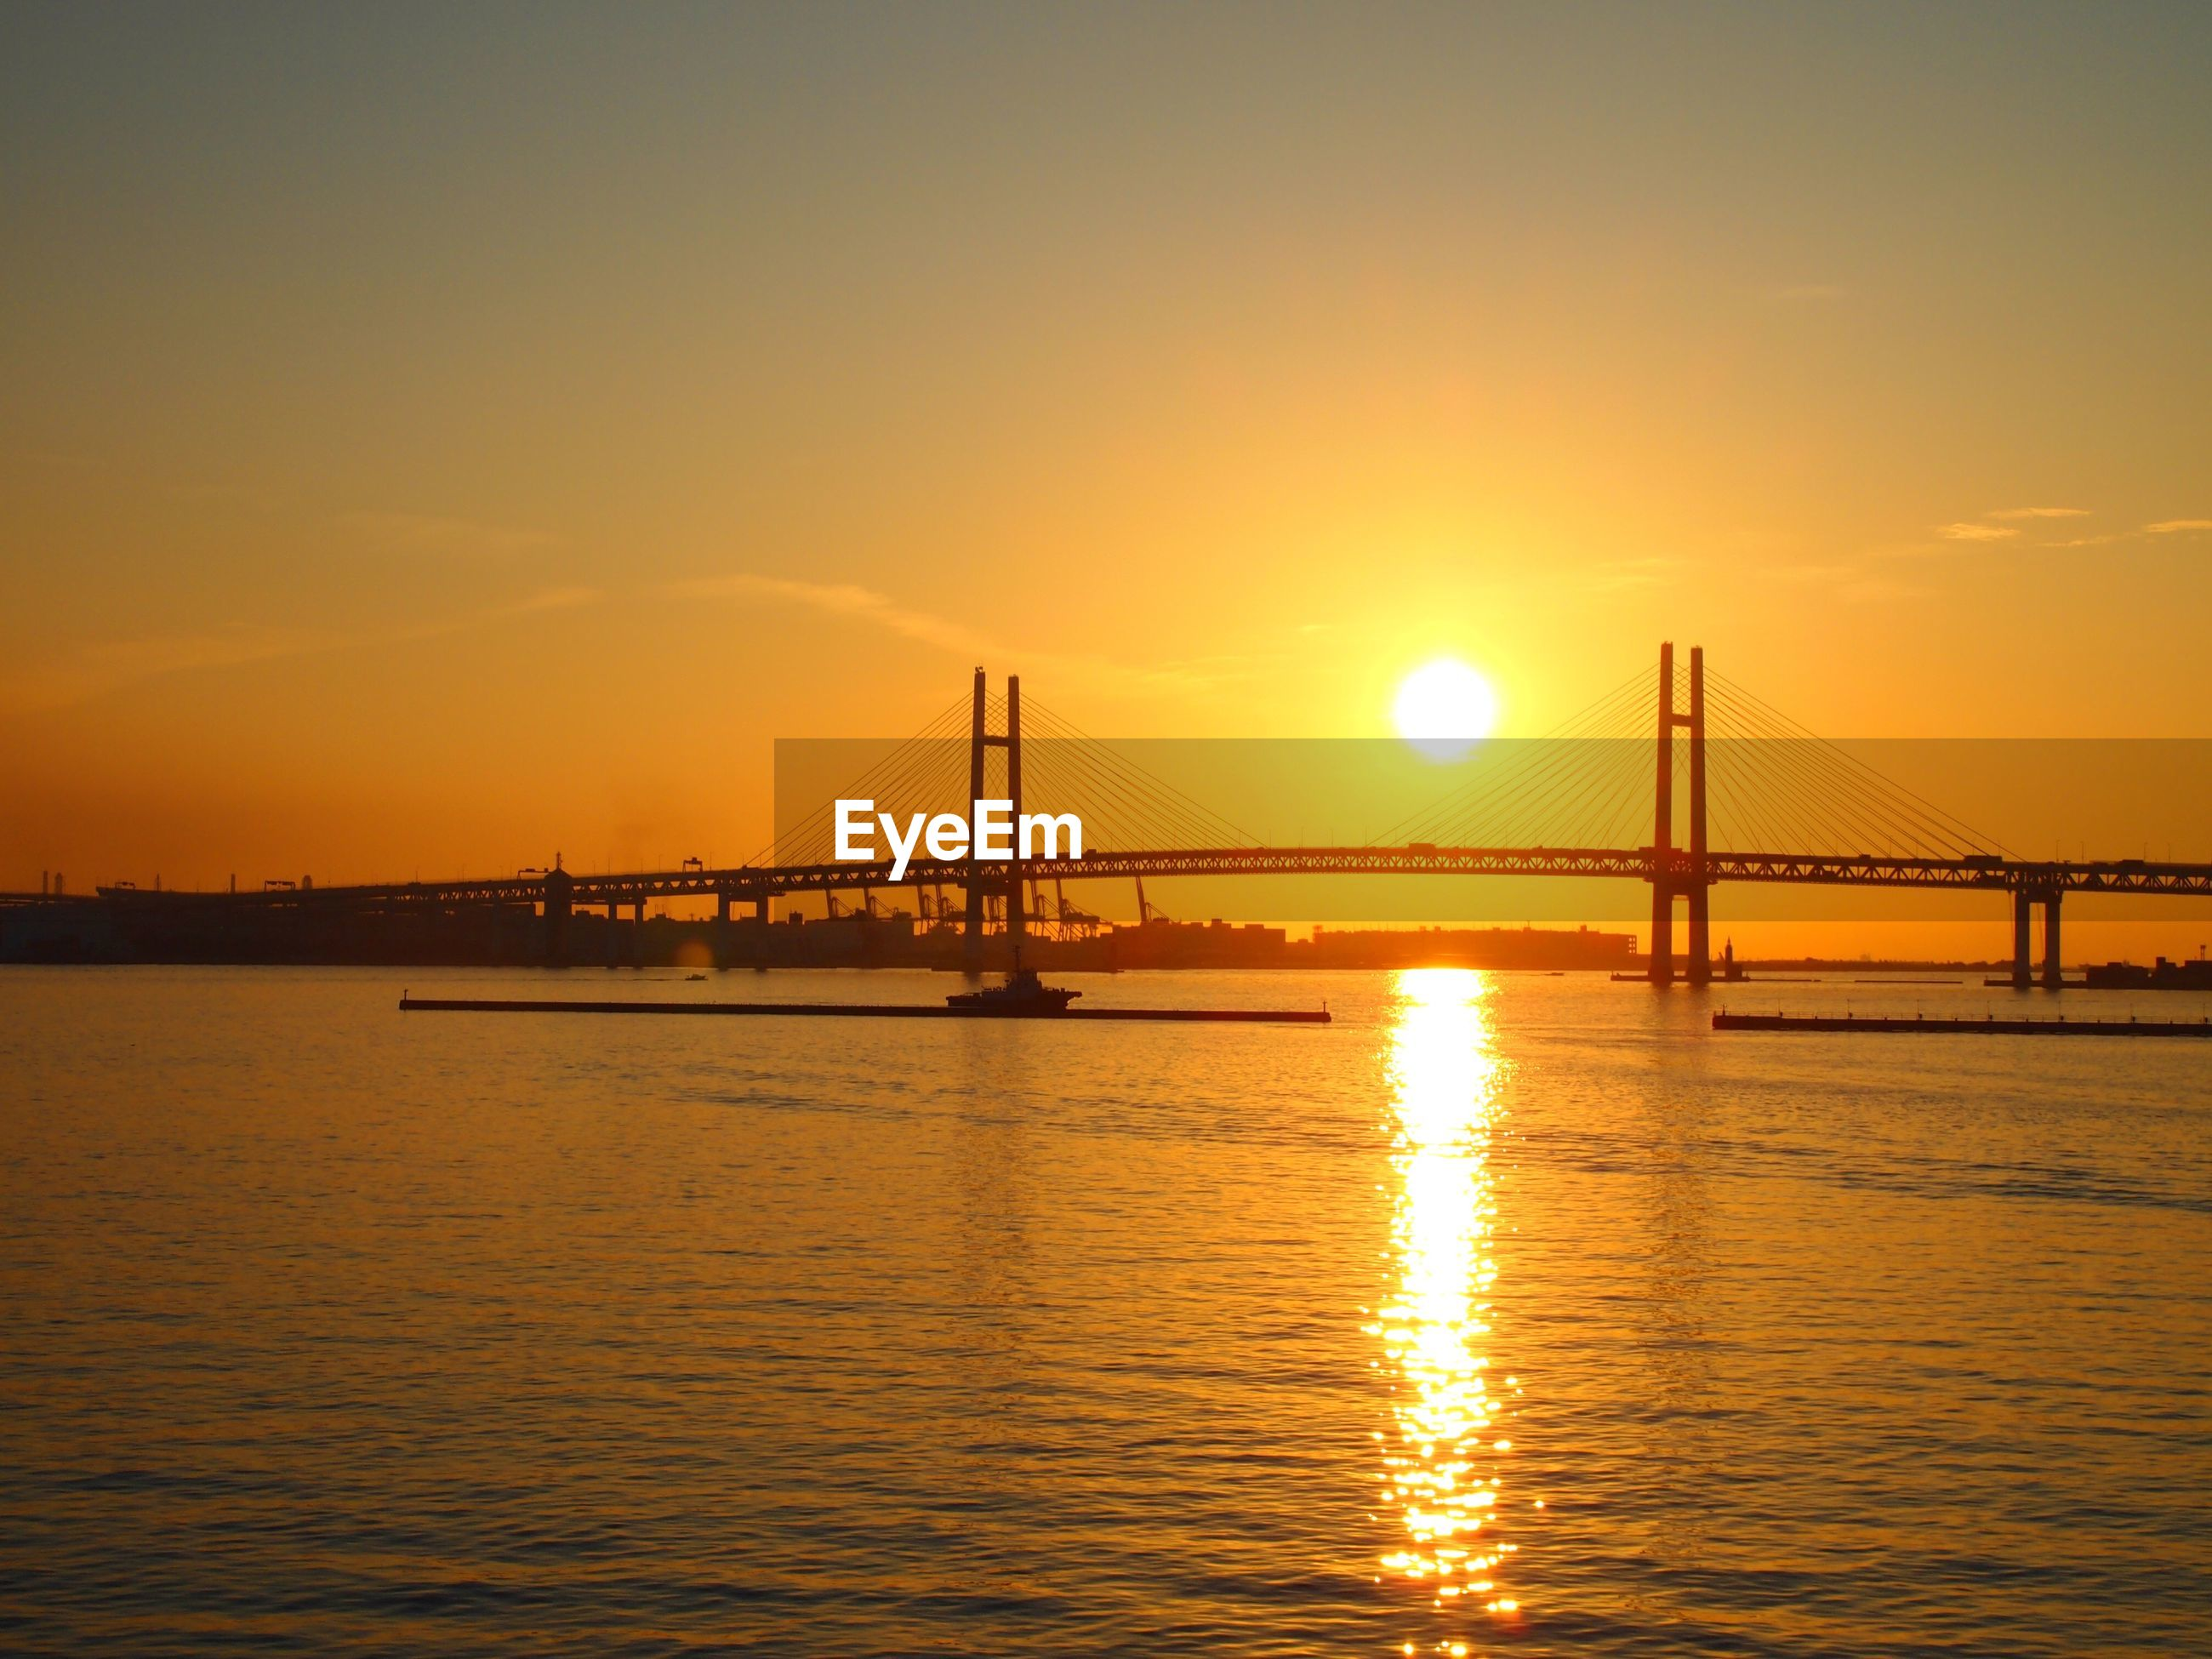 SCENIC VIEW OF BRIDGE OVER SEA AGAINST SKY DURING SUNSET